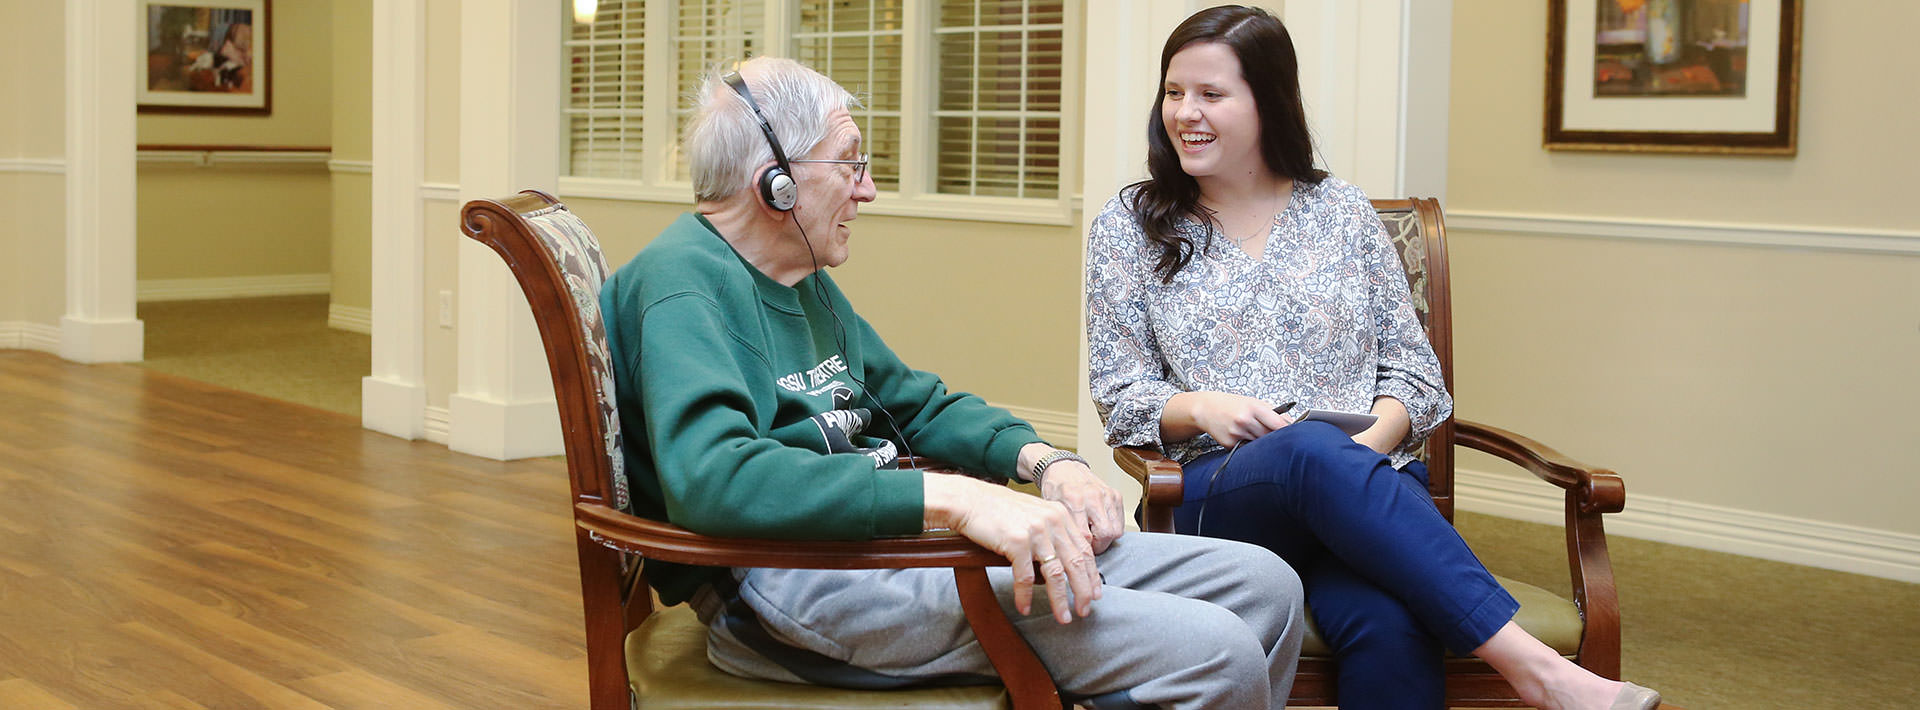 Personal story vital to success in gerontology